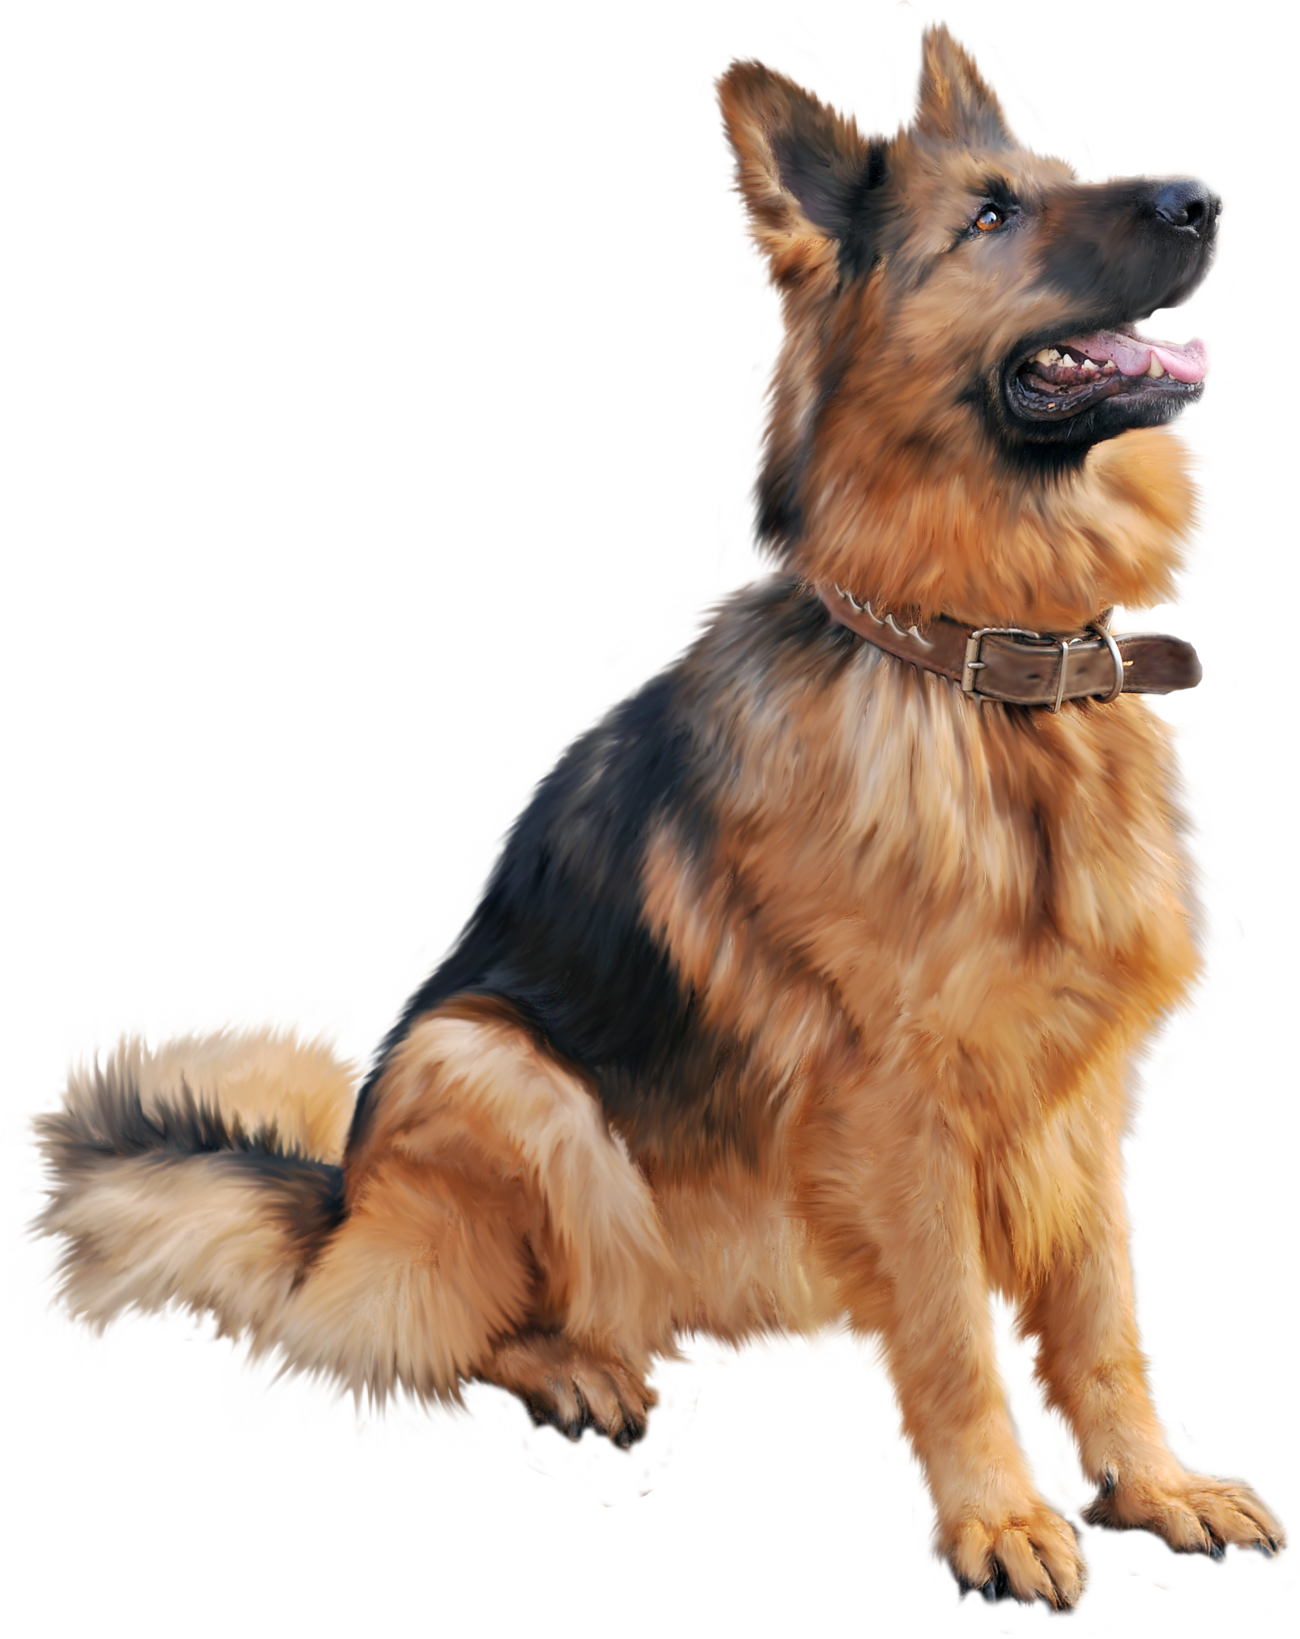 Dog png image, dogs, puppy pictures free download - Dog PNG - Puppy PNG HD